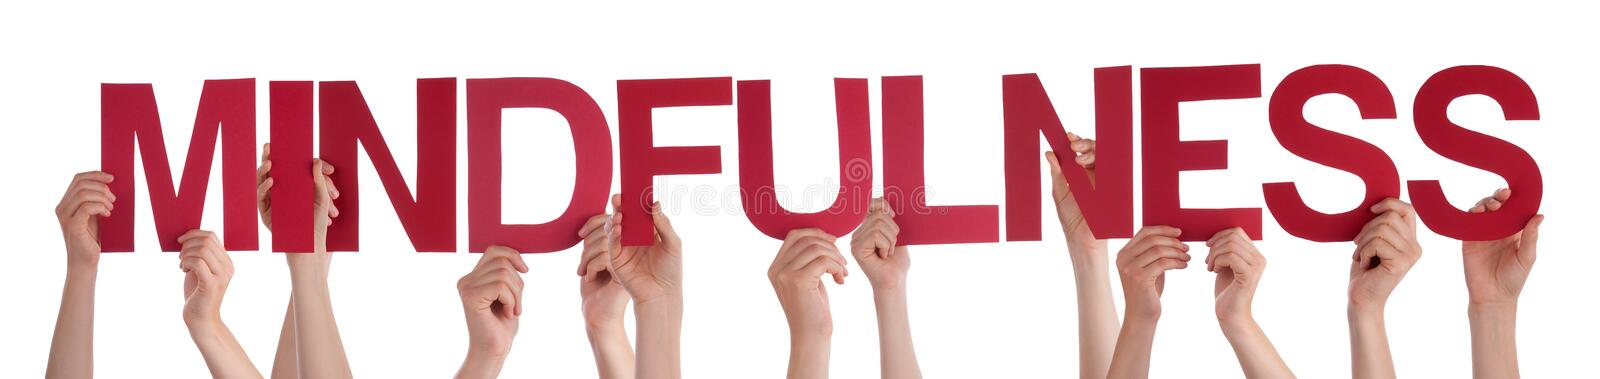 People Hands Holding Red Straight Word Mindfulness stock photos